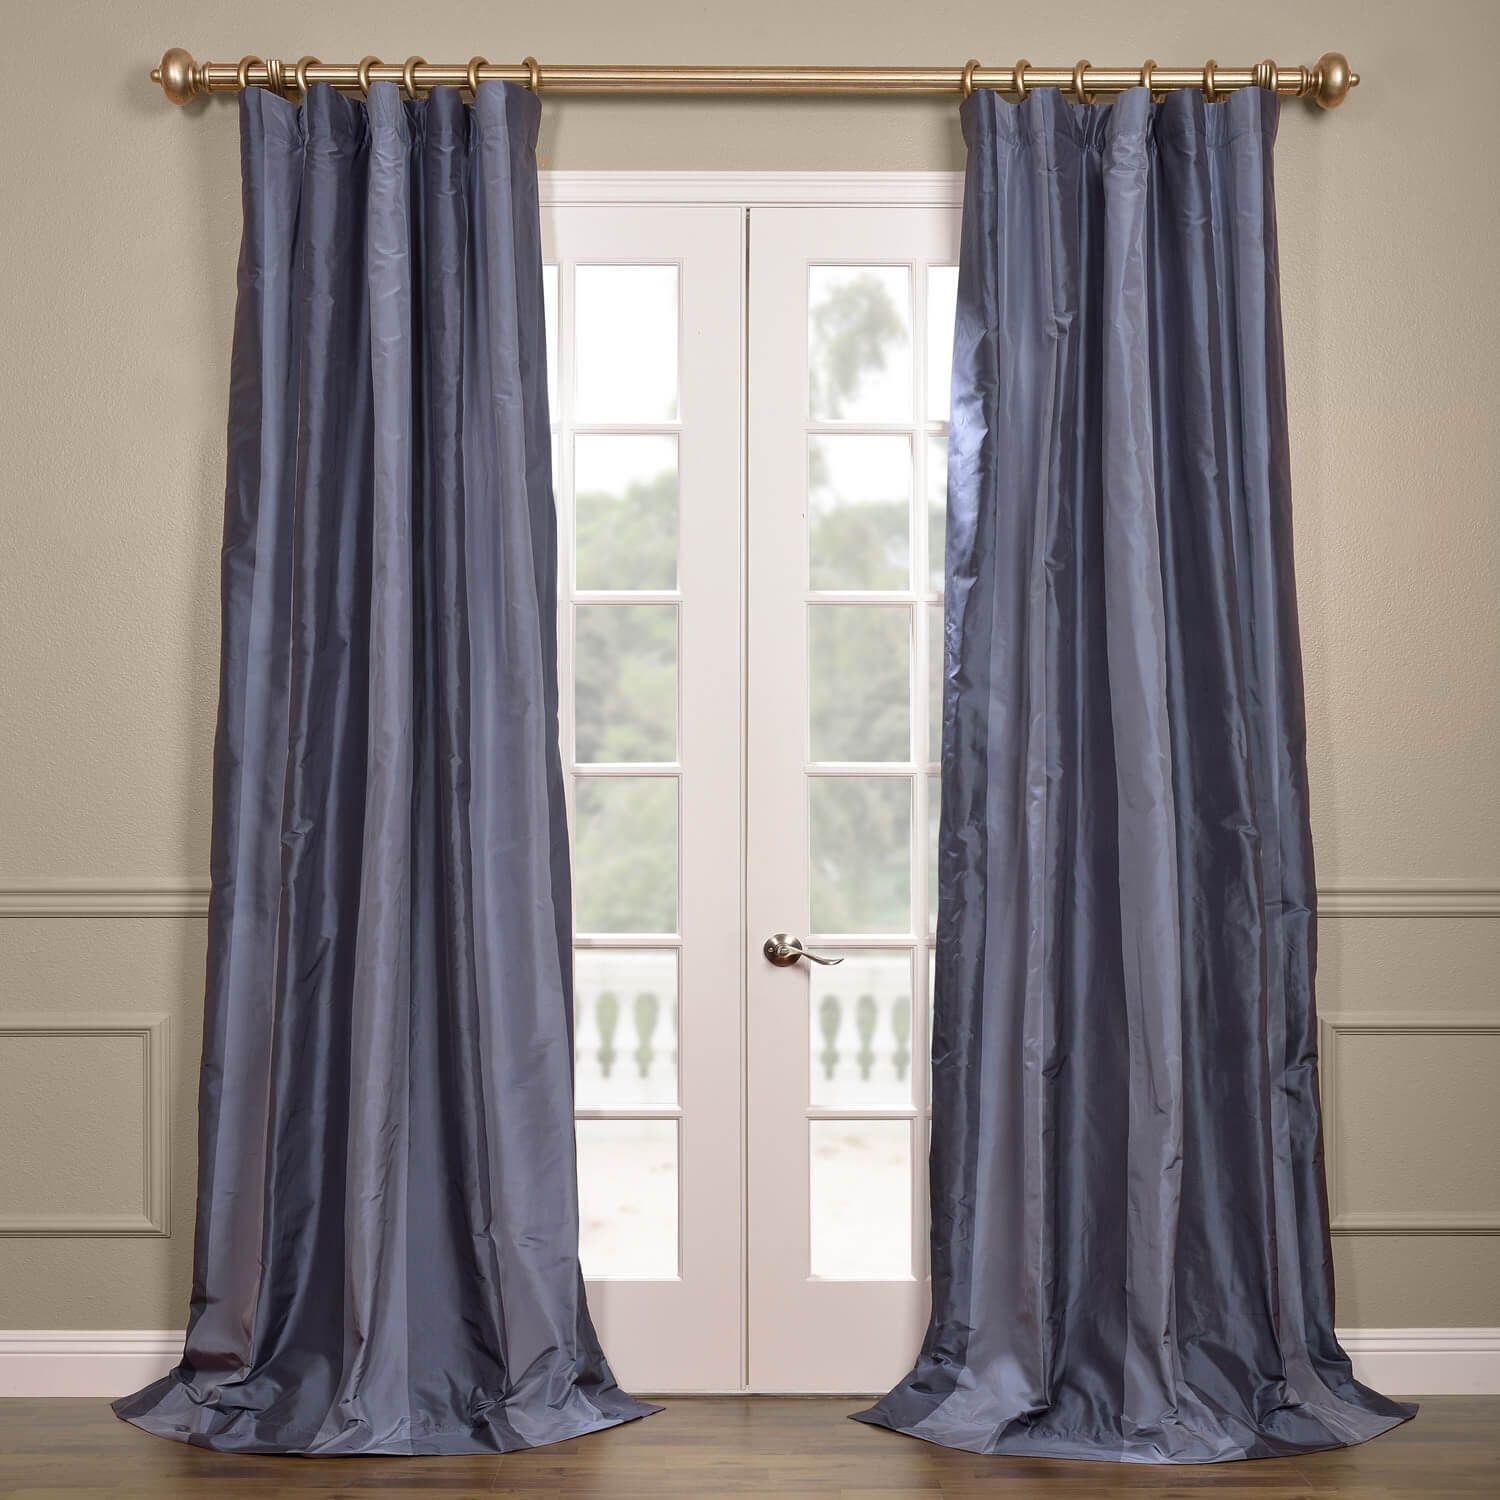 room curtains formal cheap dining size aubergine discount living window dark white drapes black inch green and breakfast curtain treatments ideas full of